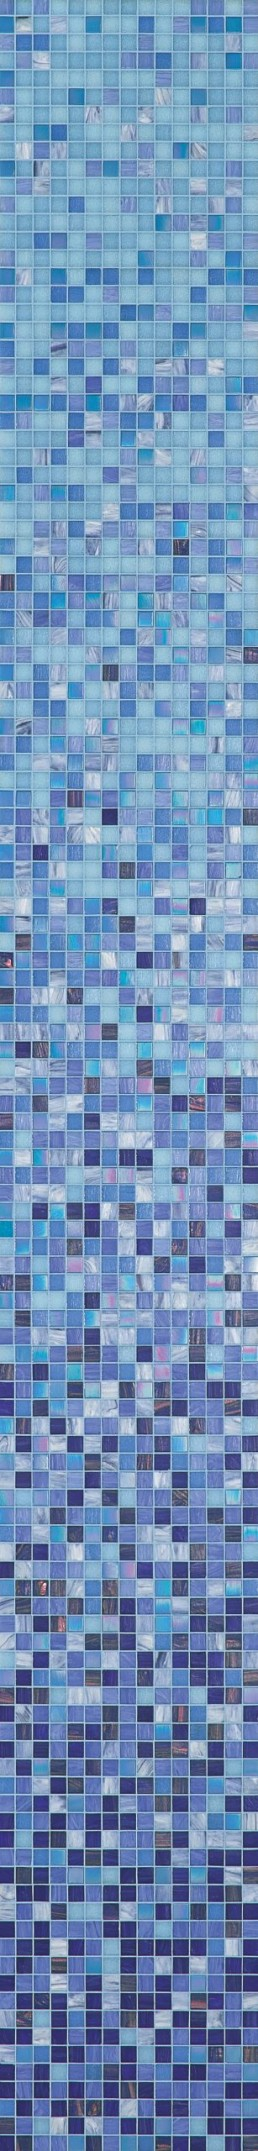 Bisazza GERBERA WHITELESS Swimming Pool Mosaic Shading Blend